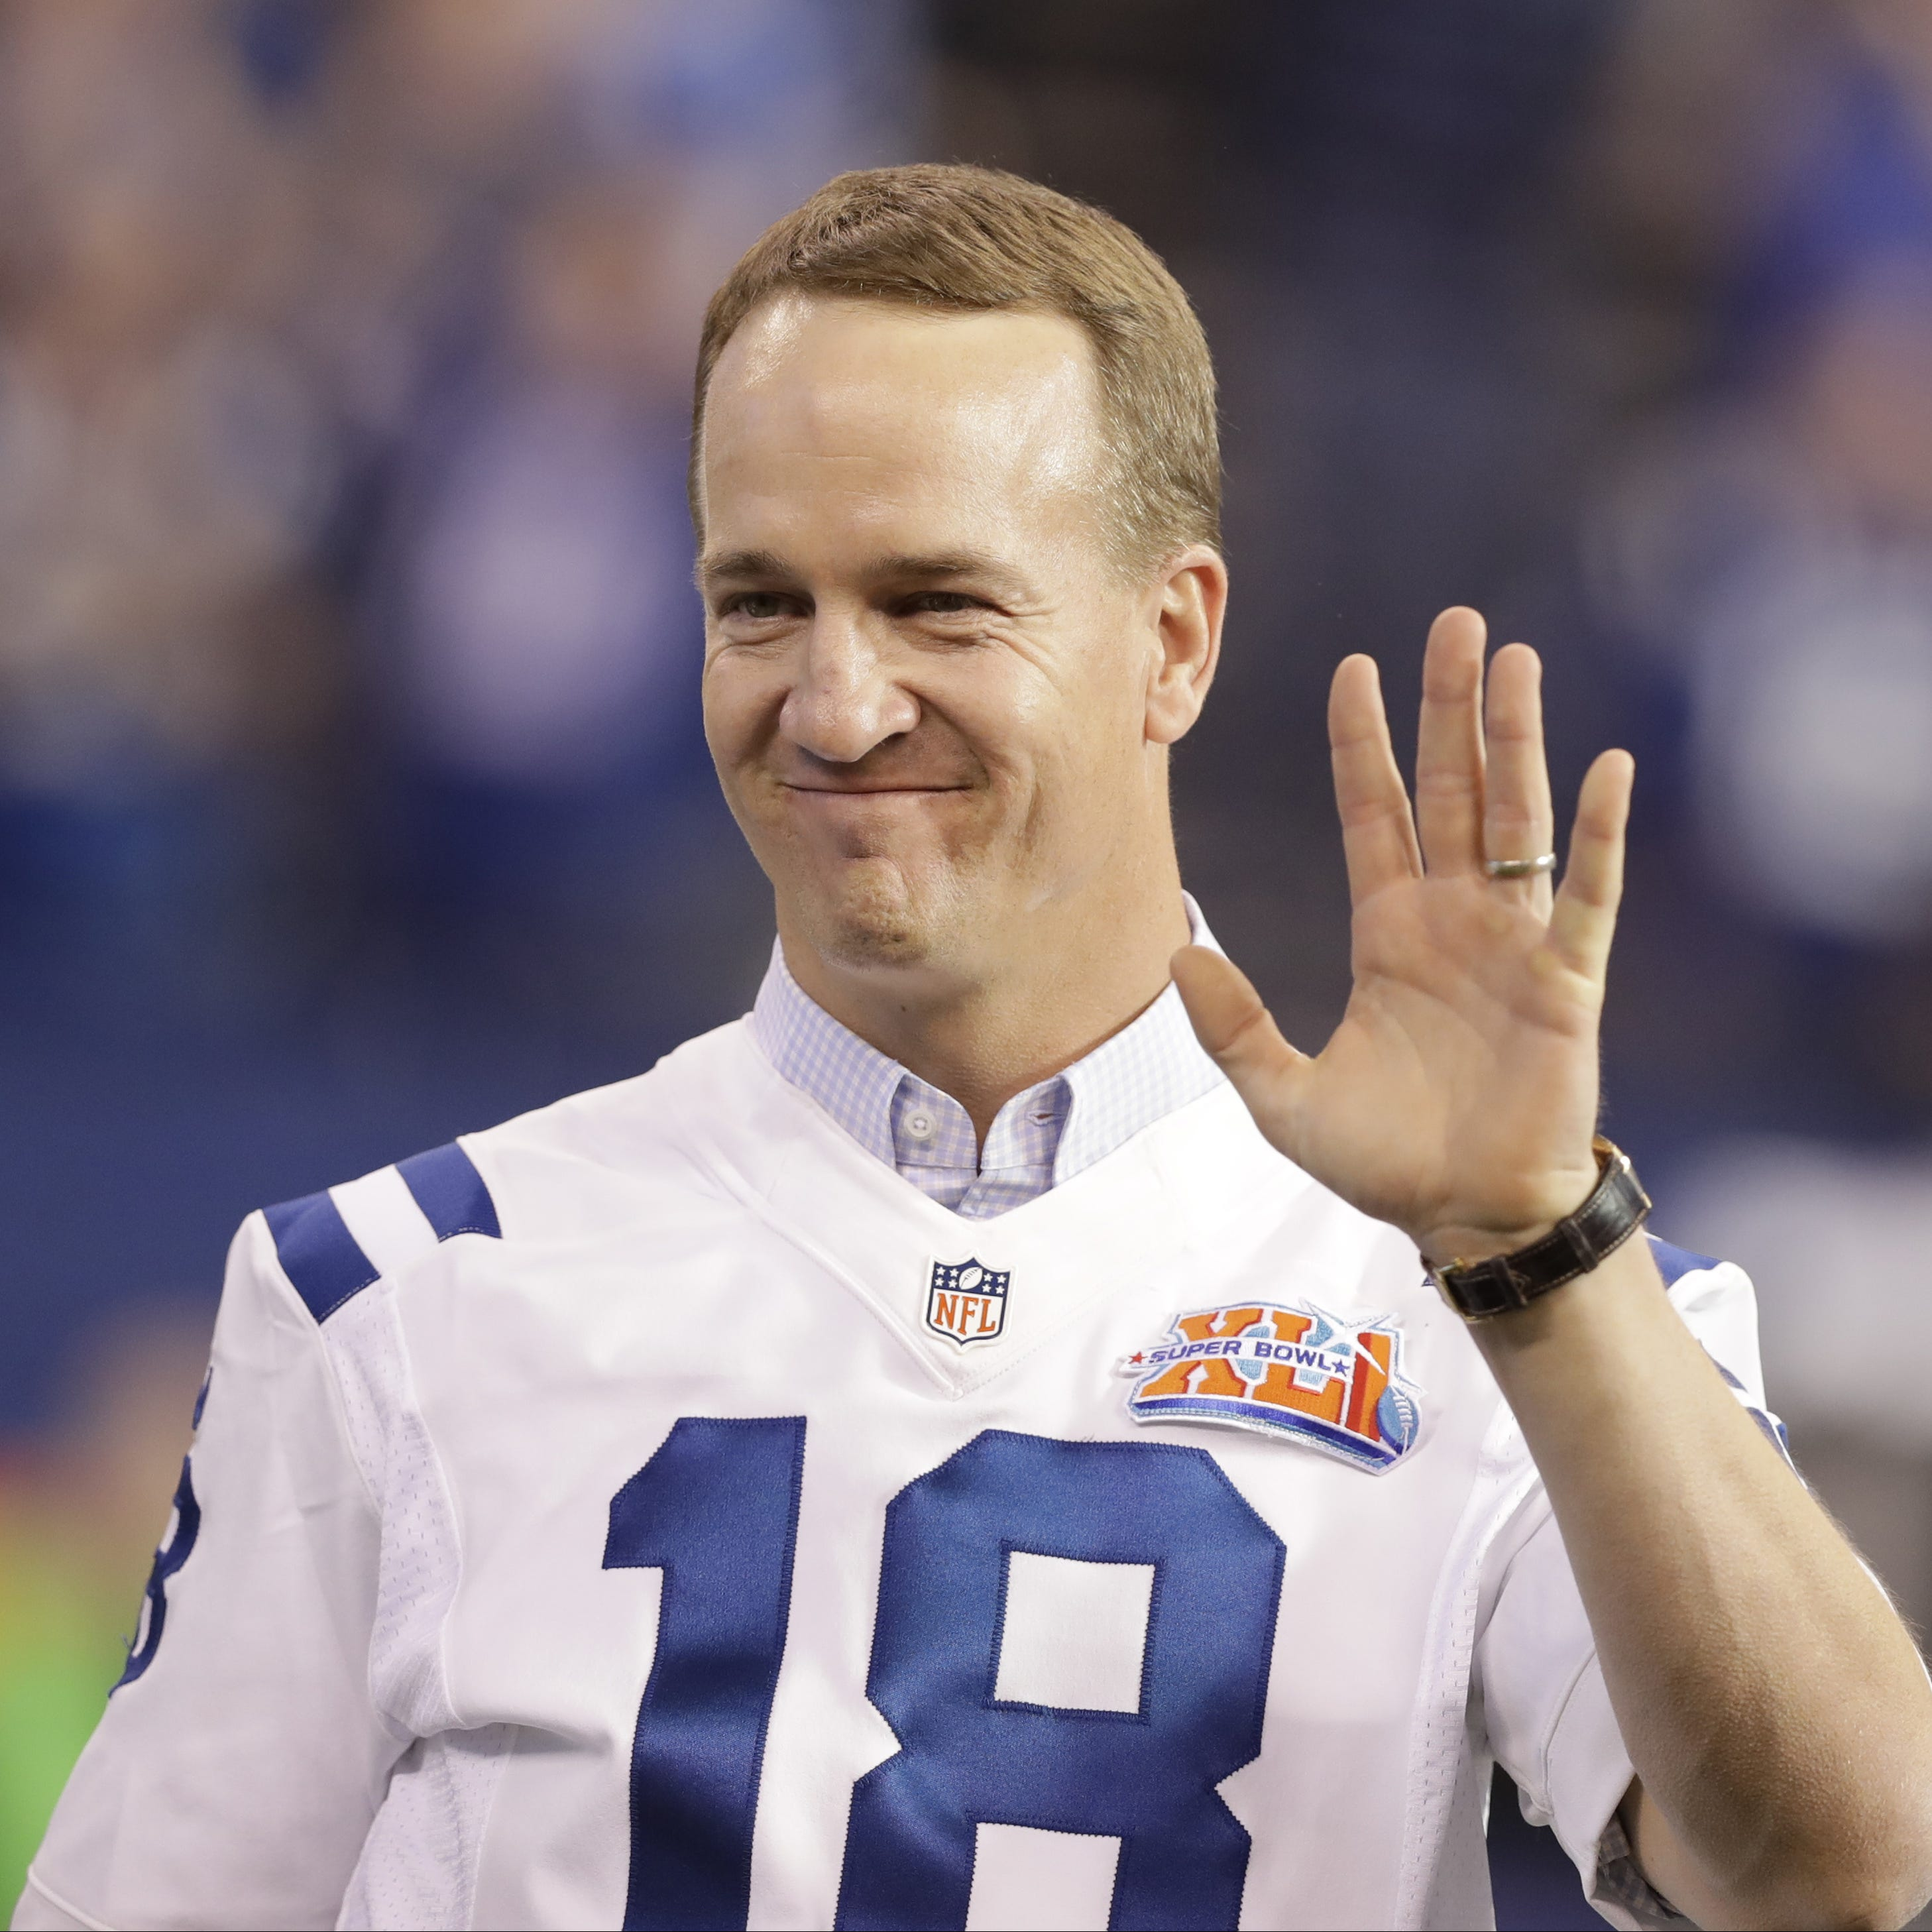 ESPN is pursuing Peyton Manning for Monday Night Football booth according to reports